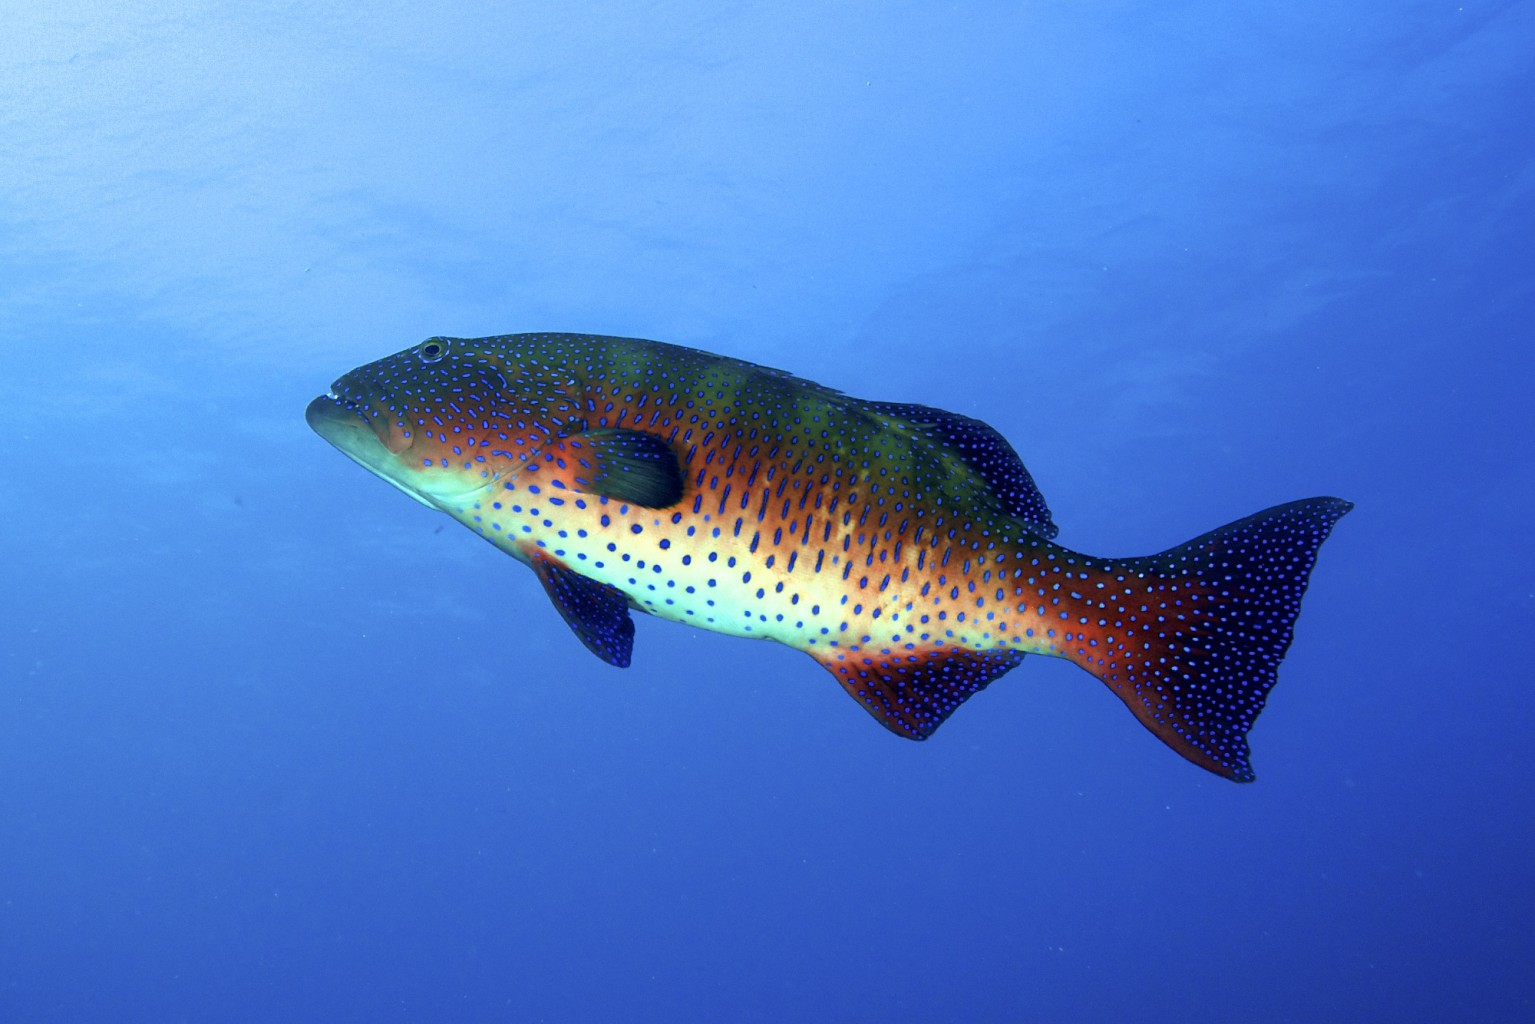 Large Trout Grouper, southern Red Sea, Egypt